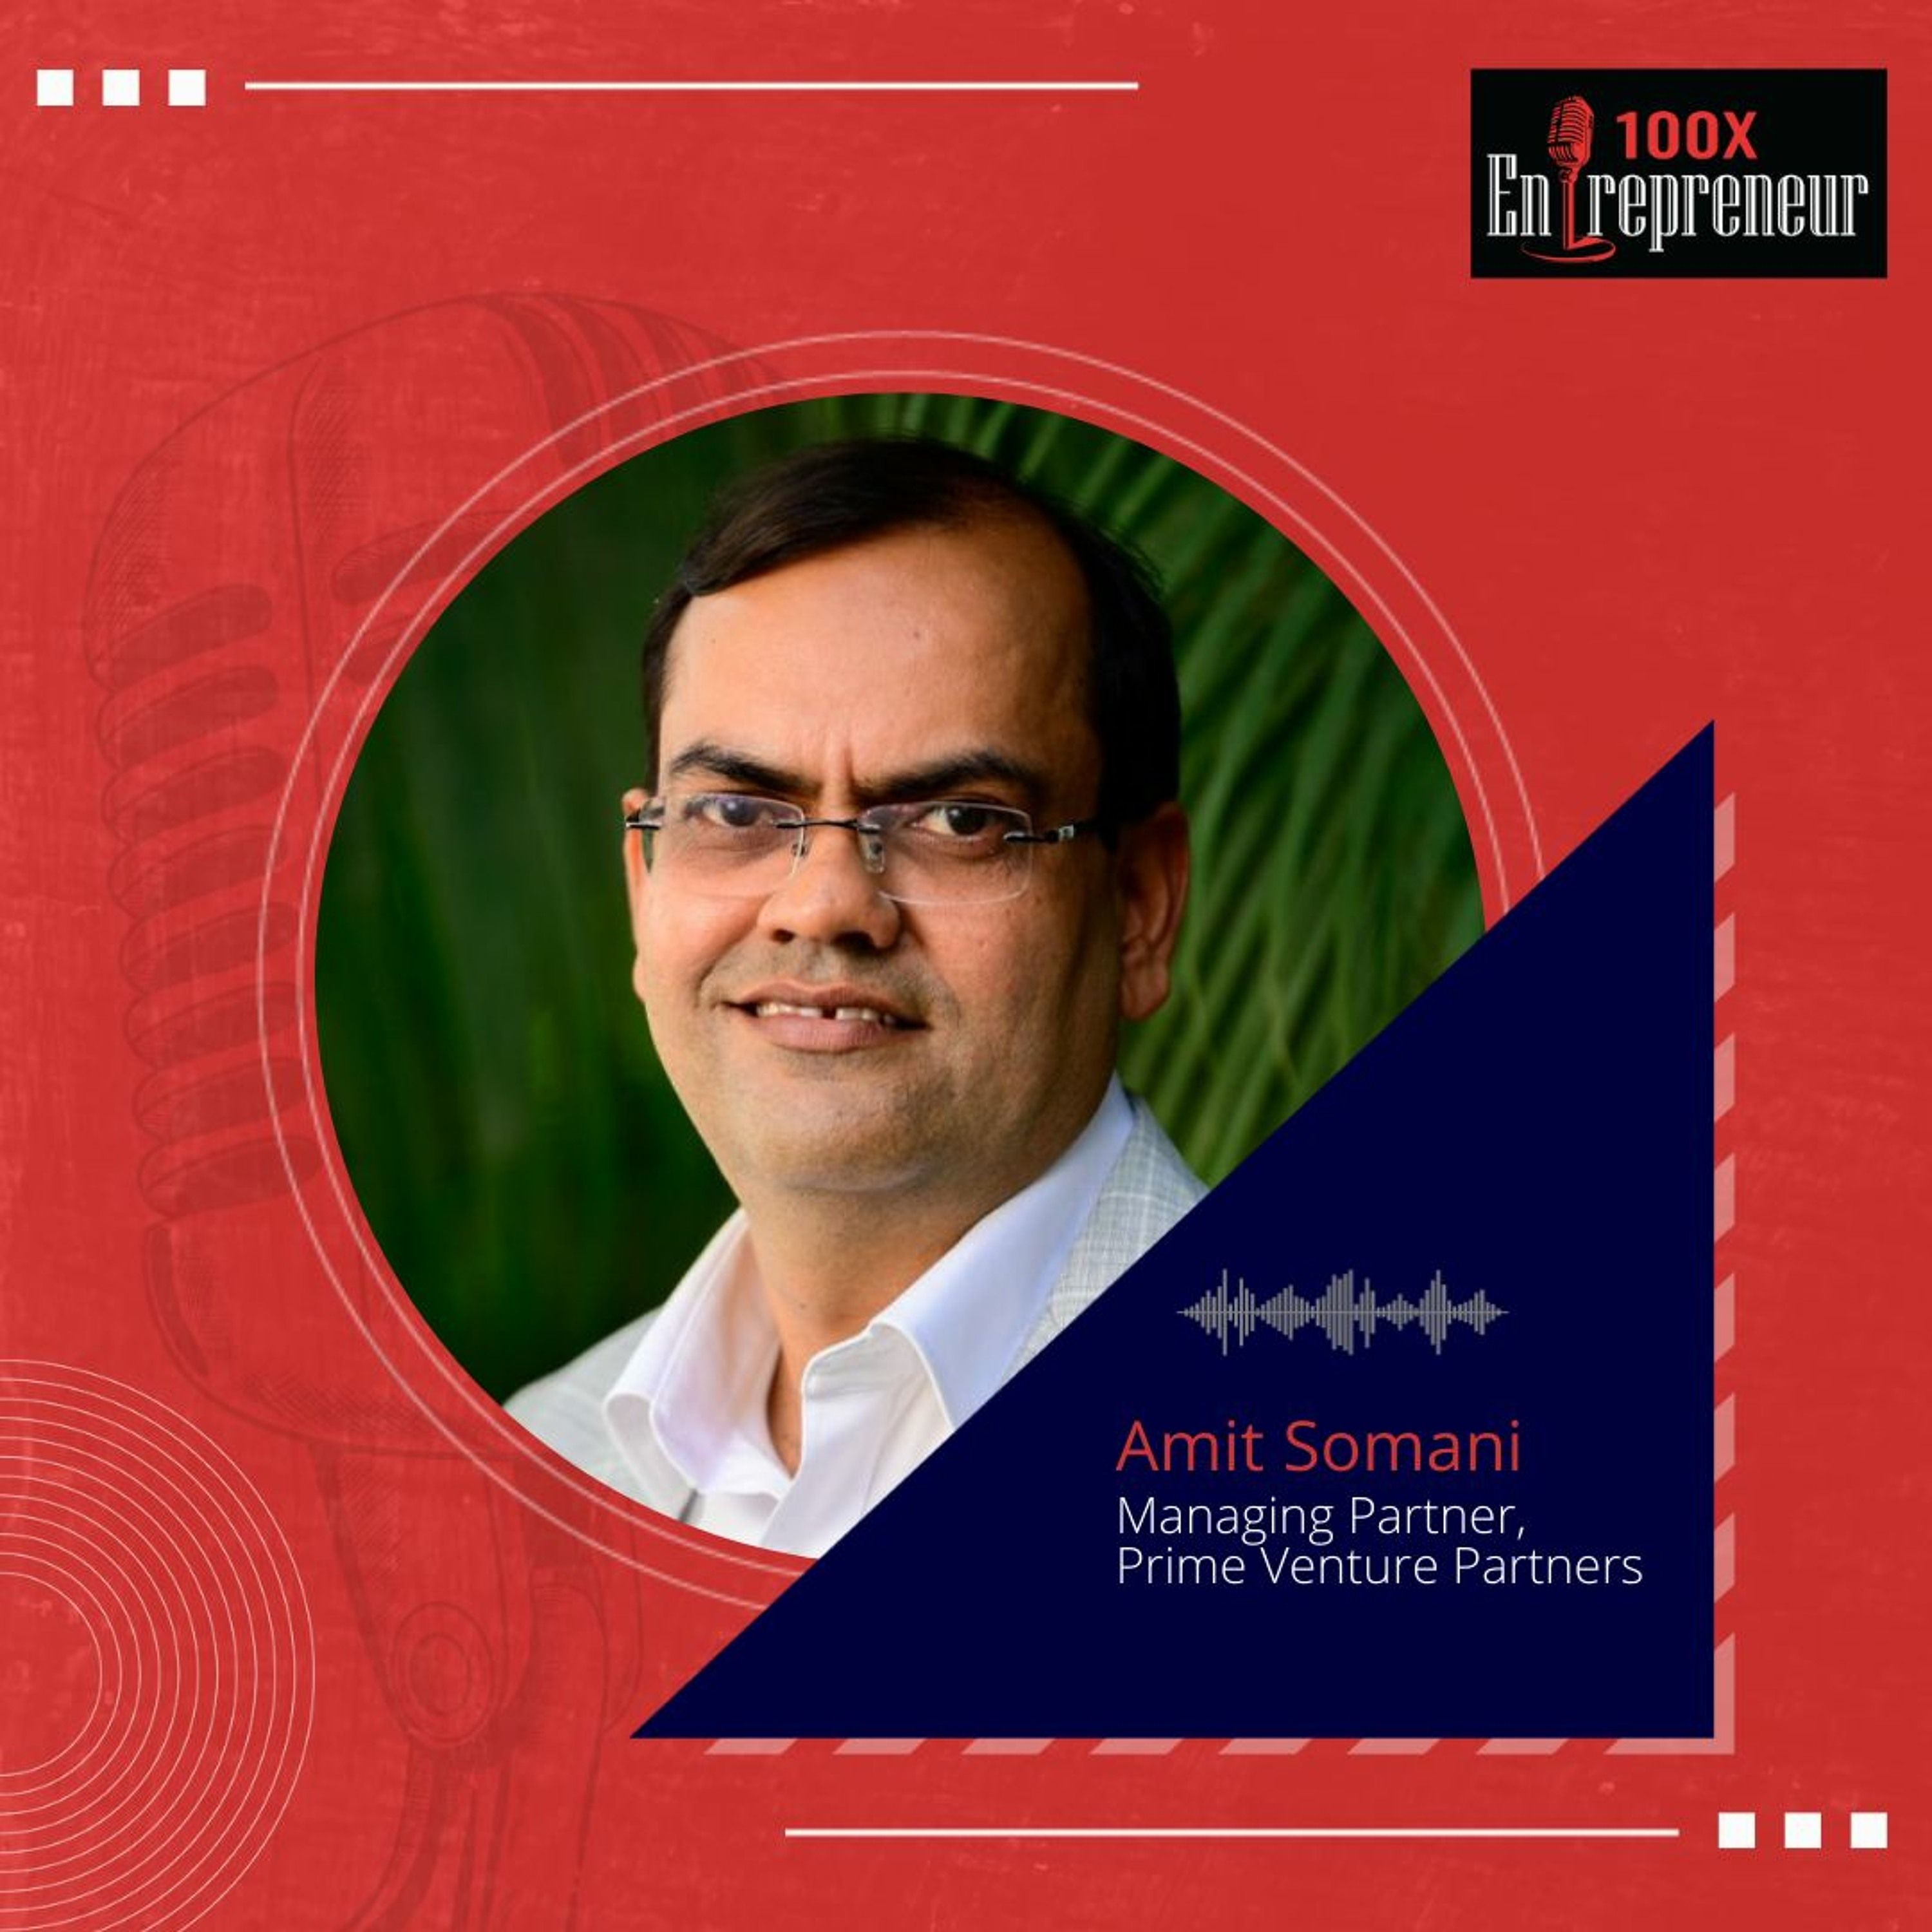 Behind The Scenes: Making of Prime Ventures podcast & 100x Entrepreneur podcast with Amit Somani